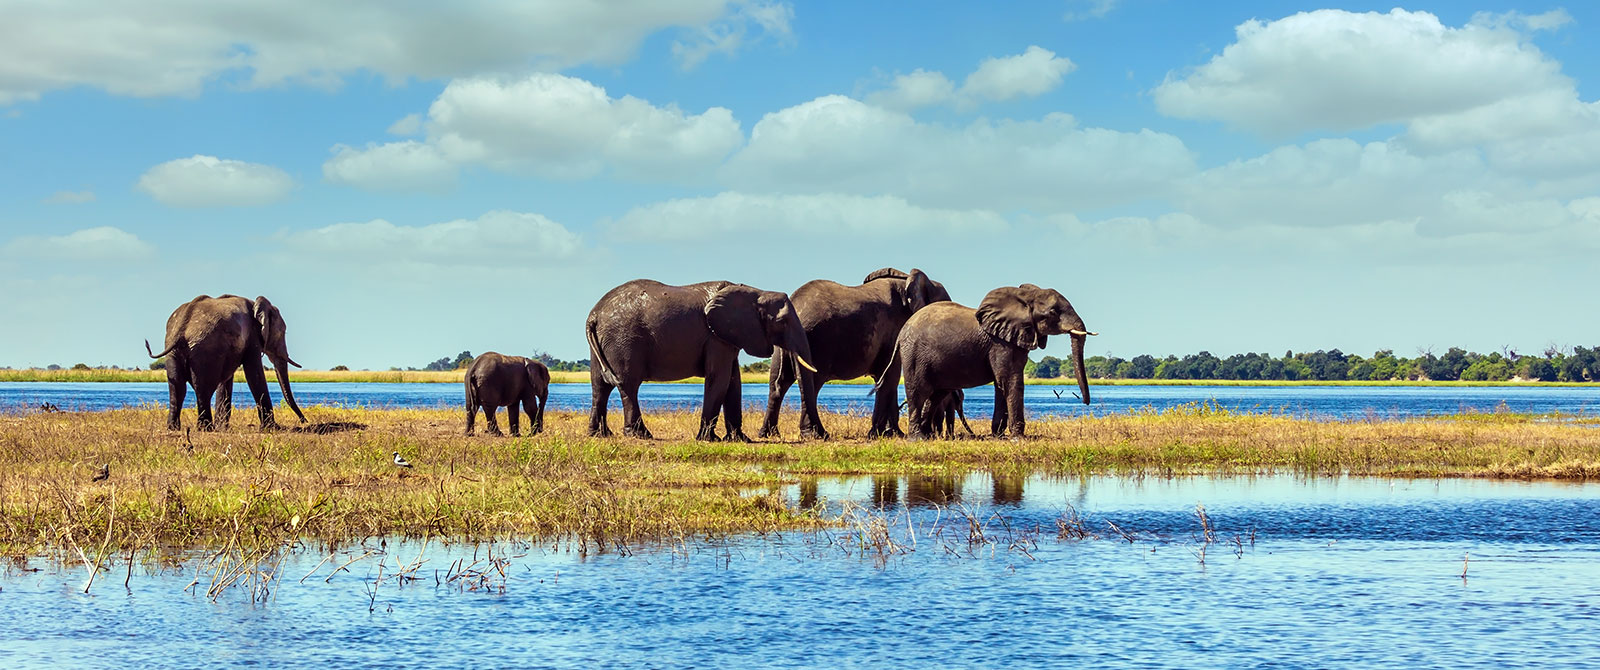 Elephants in Chobe National Park - Zambezi Queen River Cruise